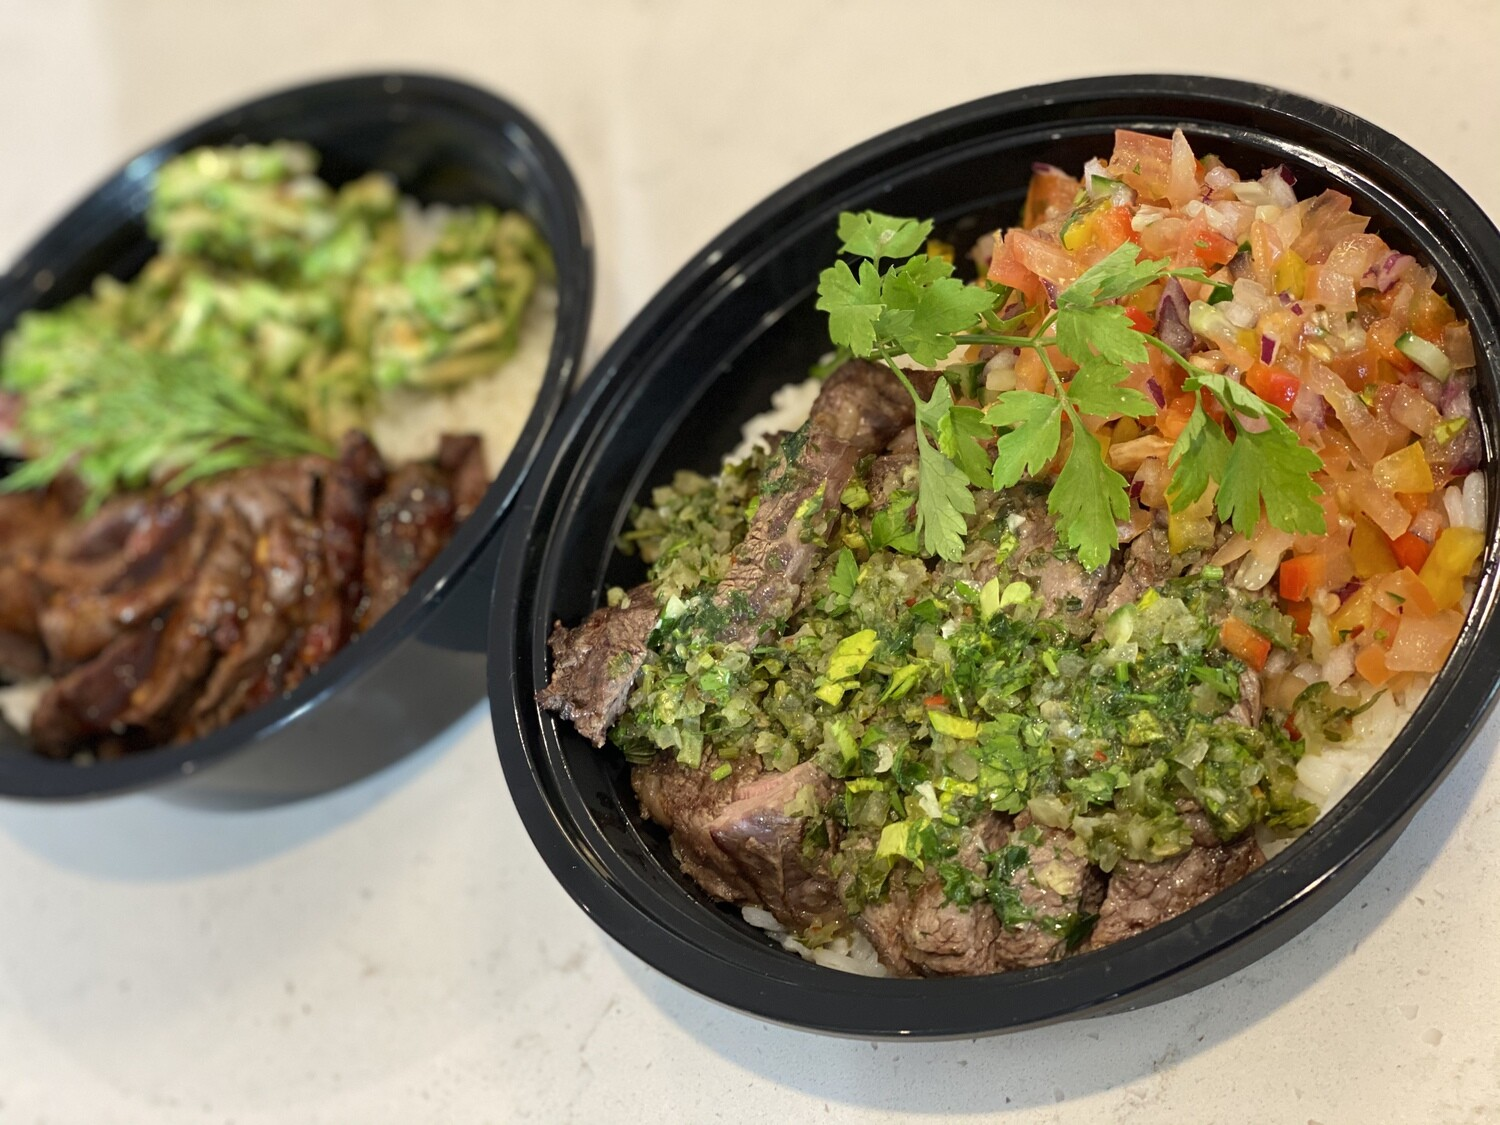 Meal-in-a-Bowl Chimichurri Steak